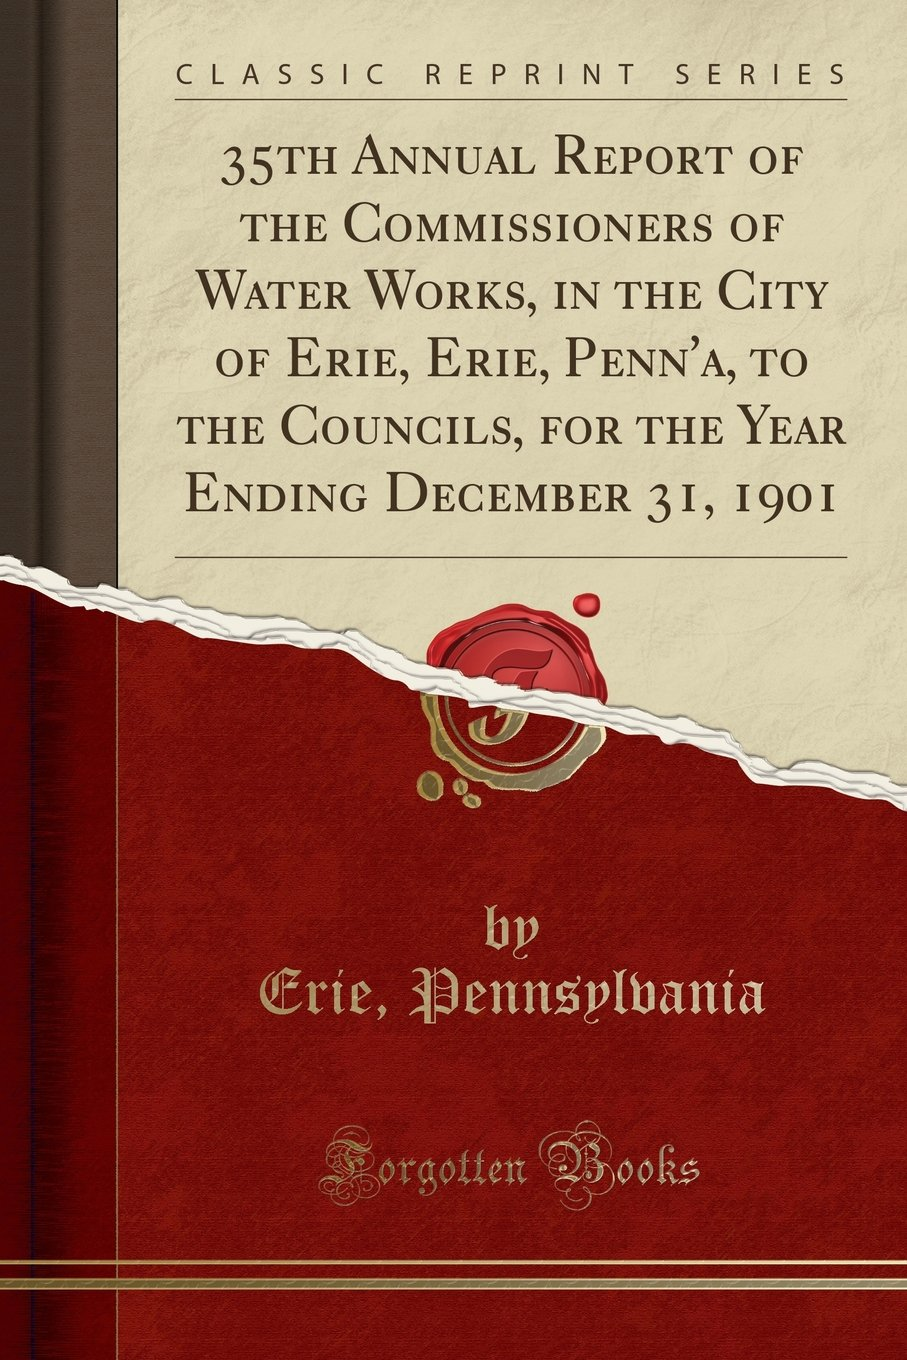 35th Annual Report of the Commissioners of Water Works, in the City of Erie, Erie, Penn'a, to the Councils, for the Year Ending December 31, 1901 (Classic Reprint) pdf